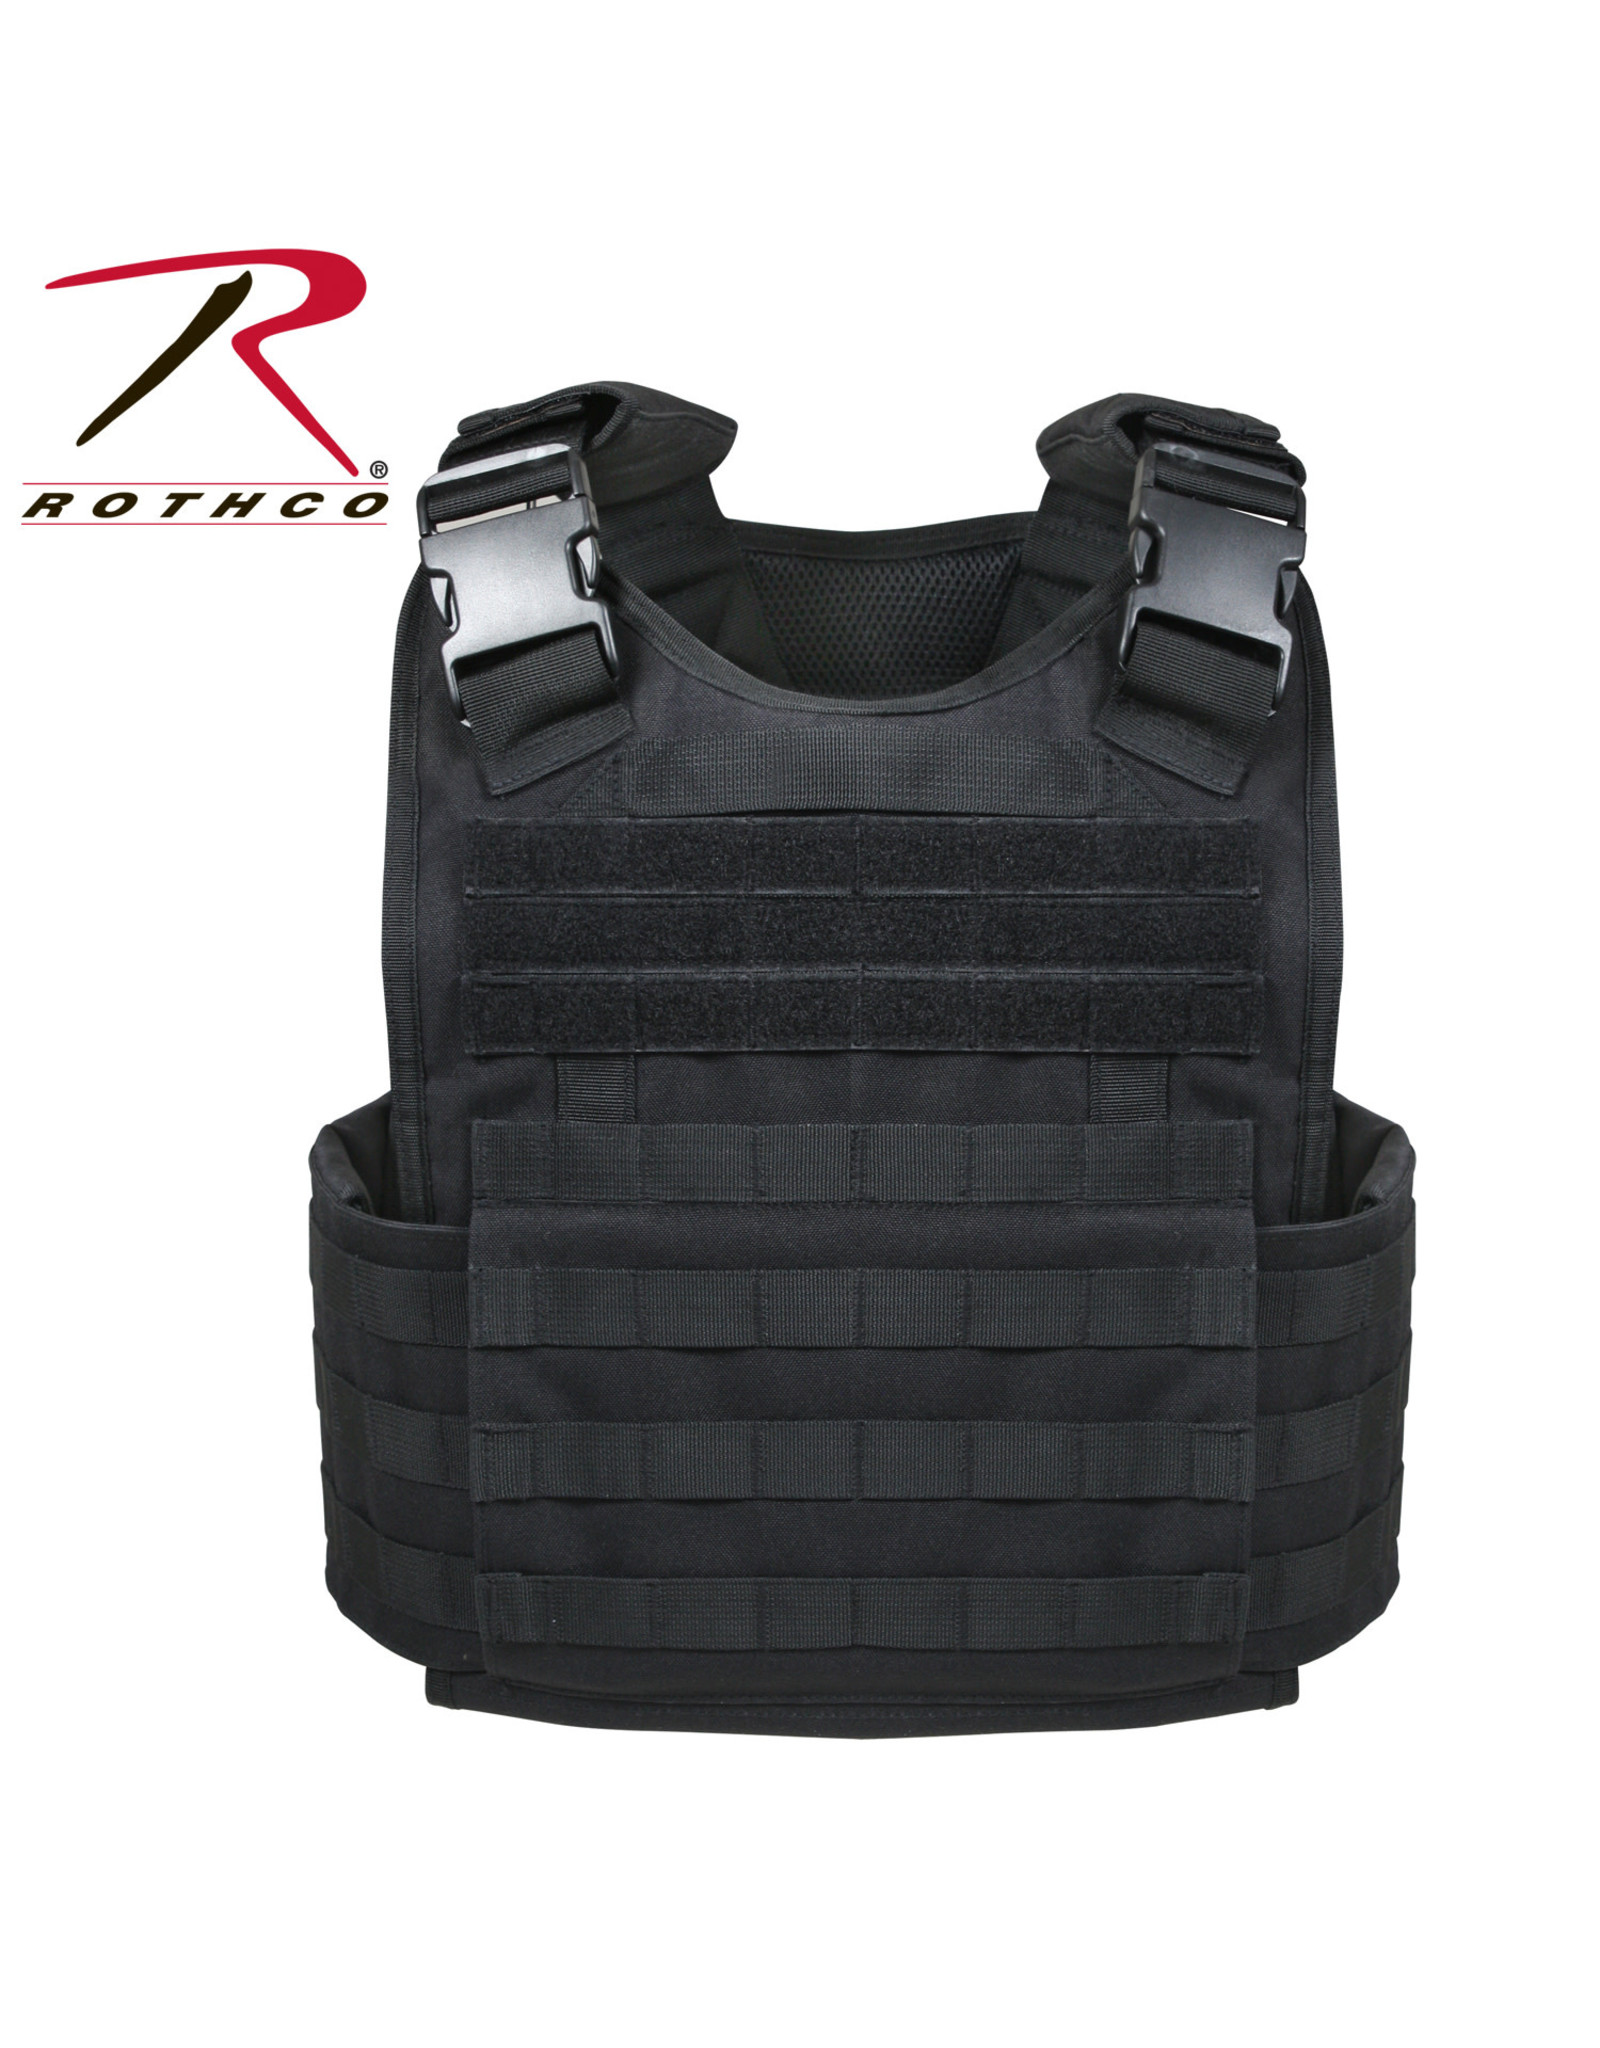 Rothco M/A Plate Carrier Vest